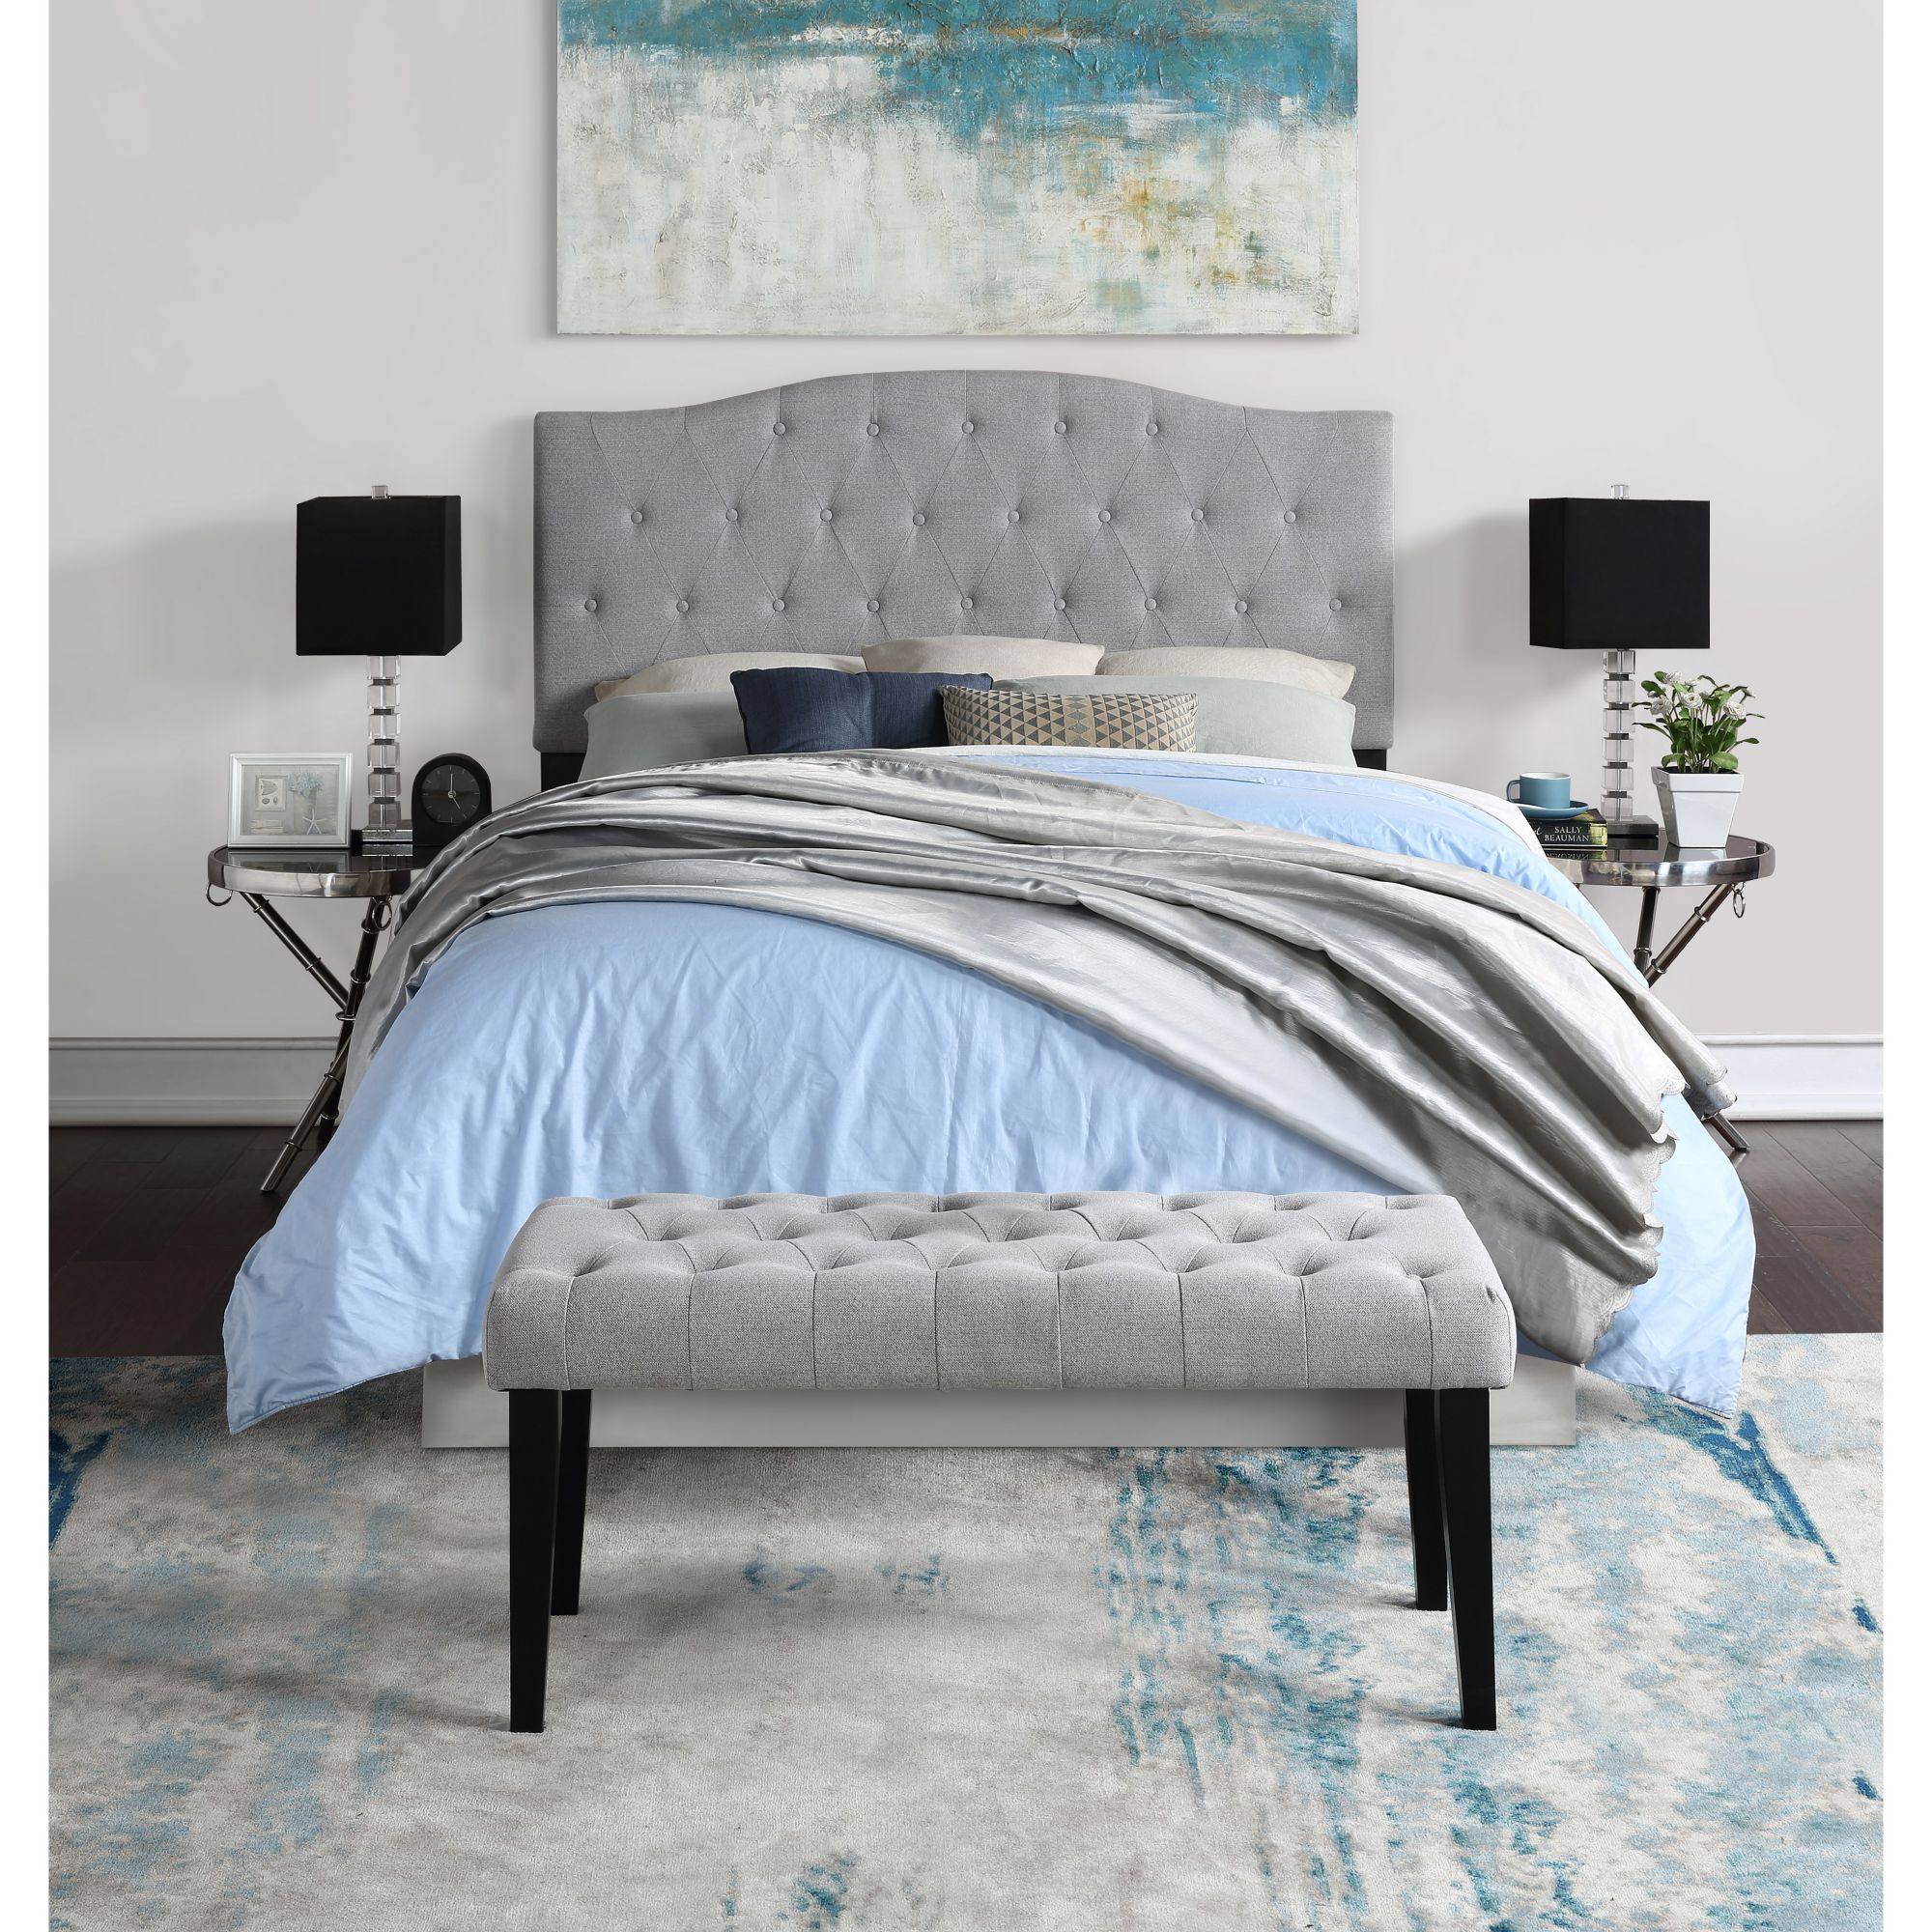 Image of: Northridge Home Queen Size Upholsteed Headboard And Bench Bjs Wholesale Club